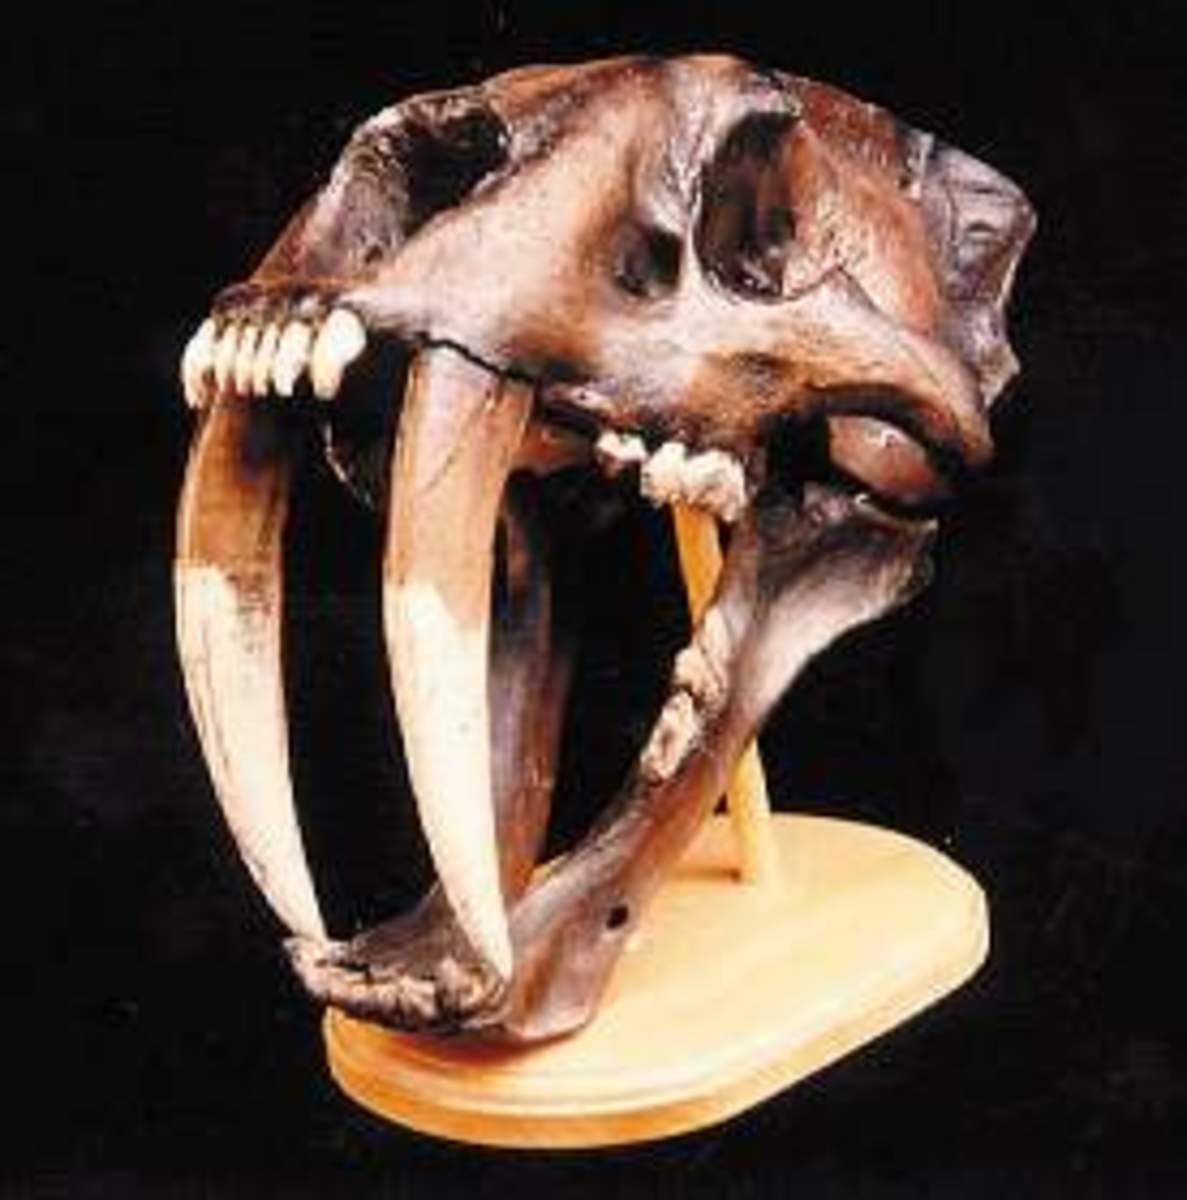 Saber-toothed cats have evolved, gone extinct, and evolved again many times. Some think they may be on their way back.